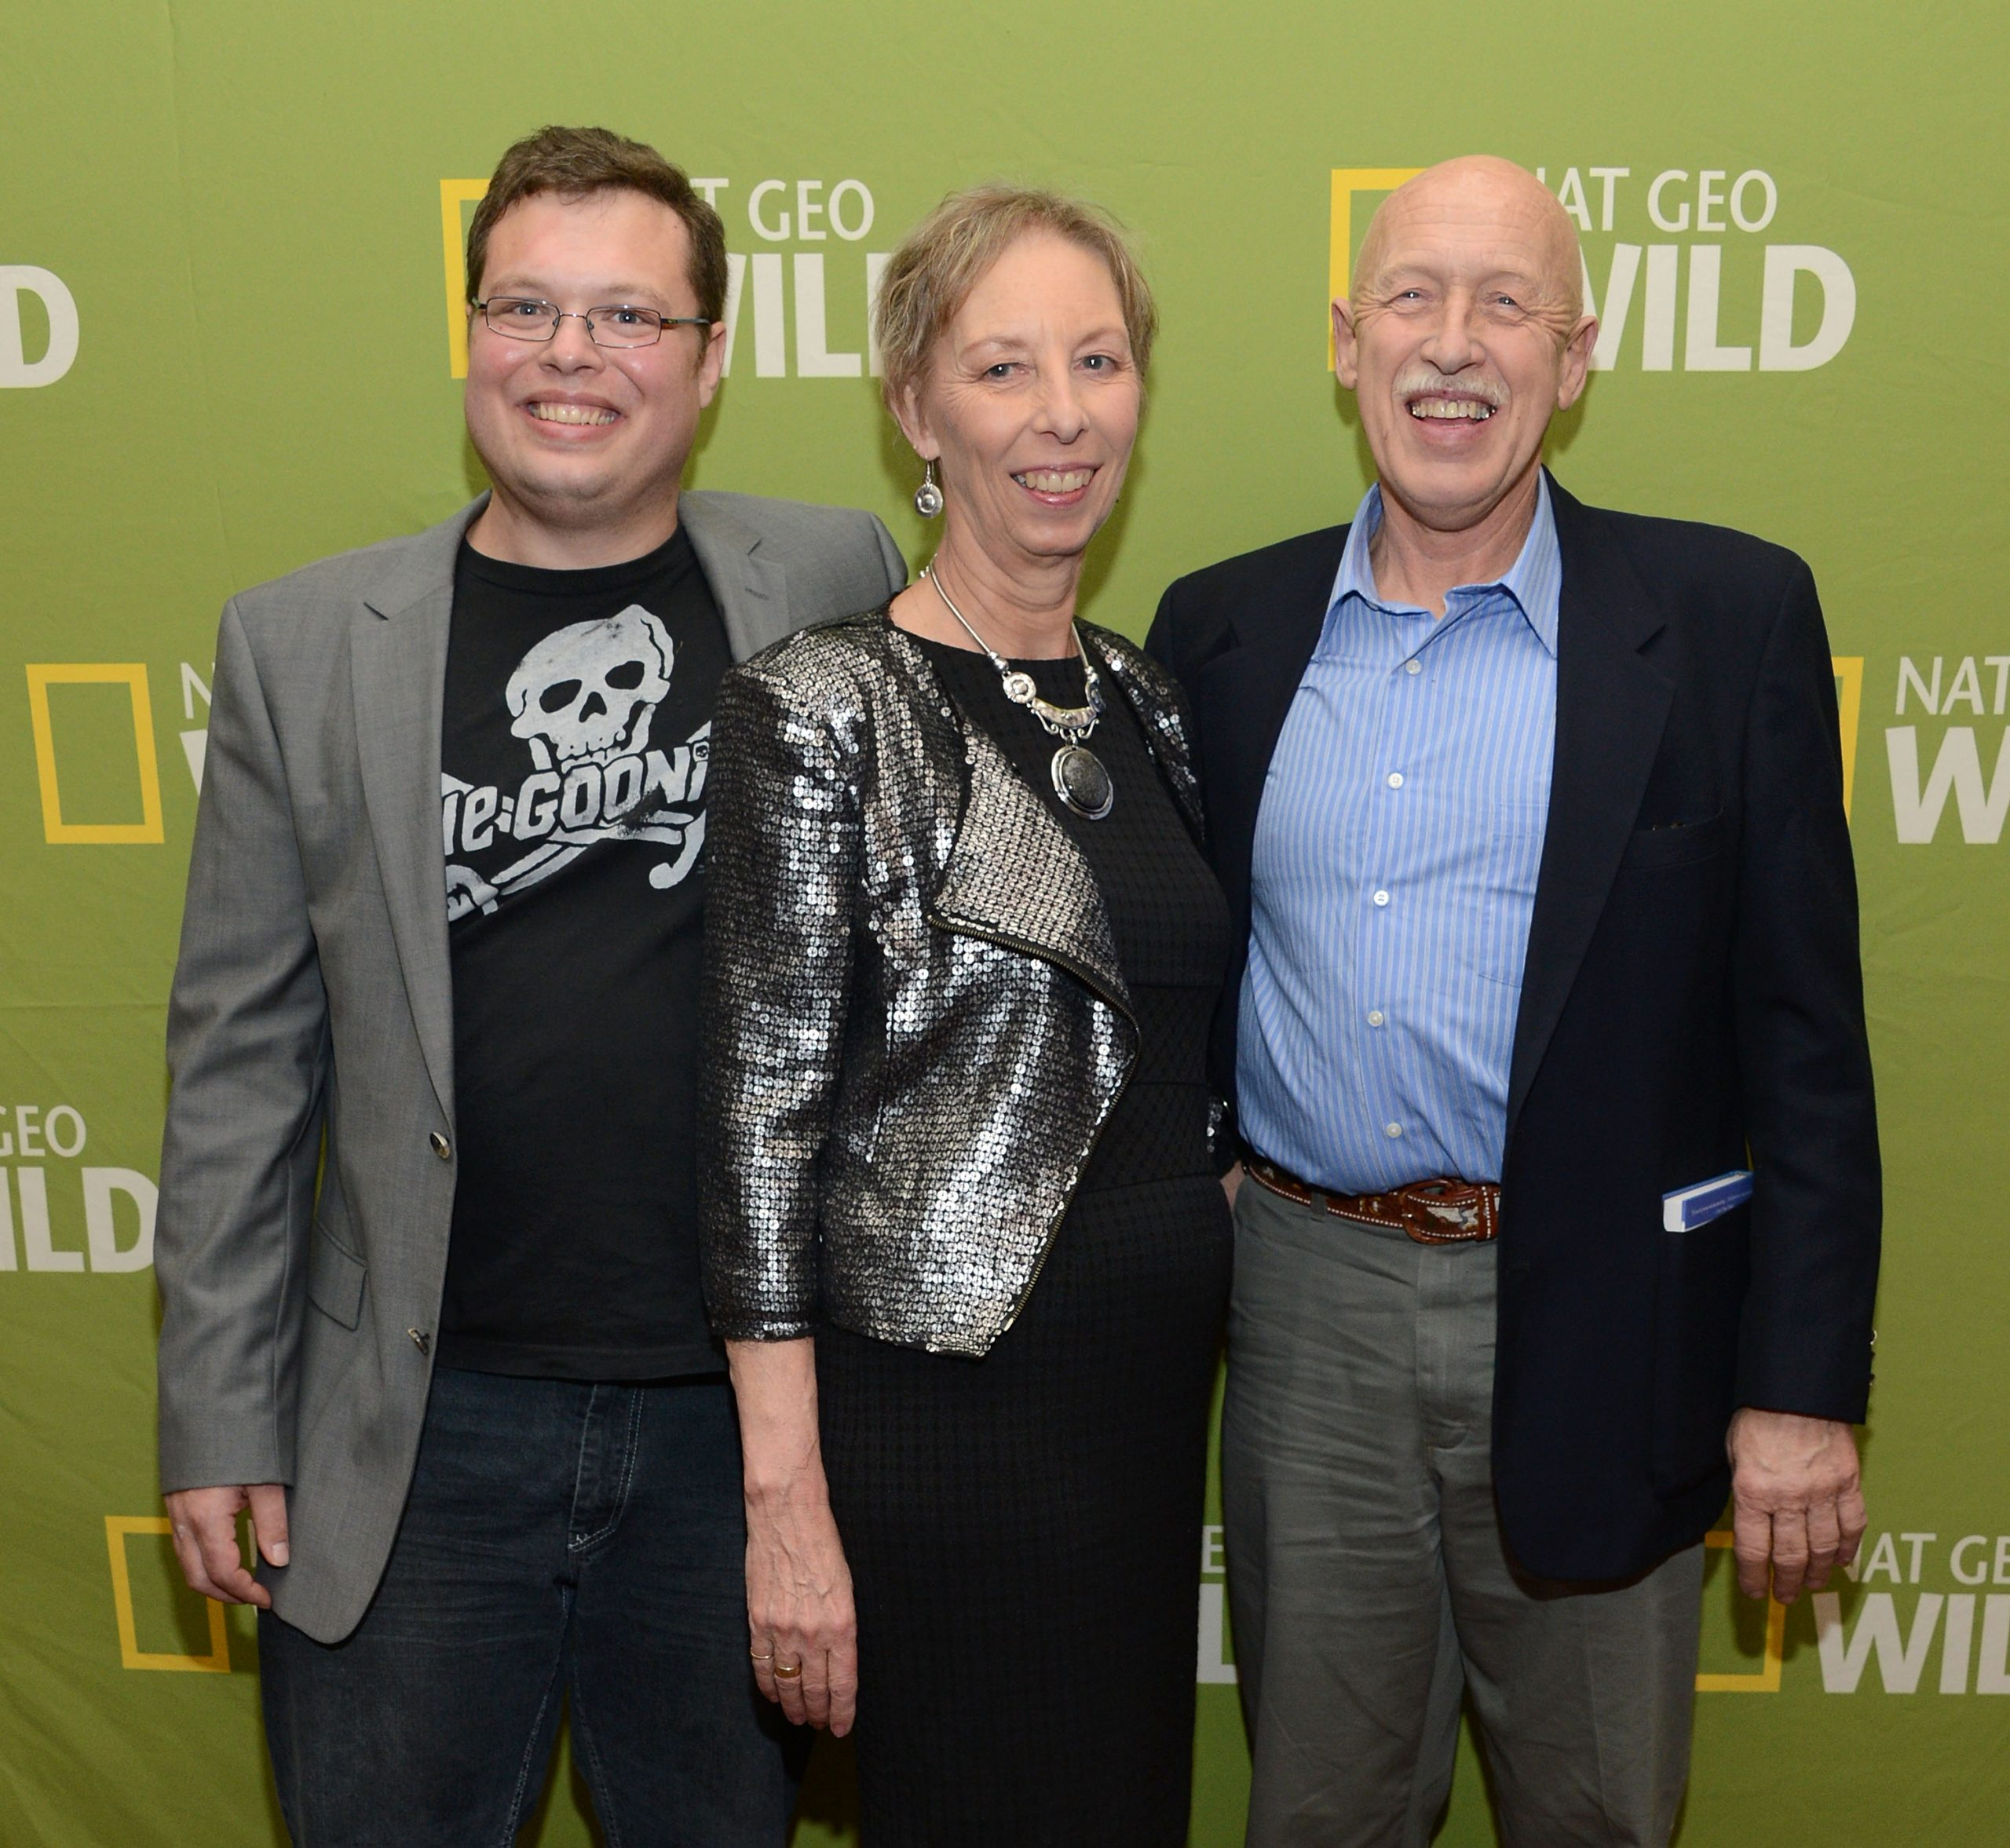 (left to right): Charles Pol, Diane Pol, and Dr. Jan Pol of 'The Incredible Dr. Pol'